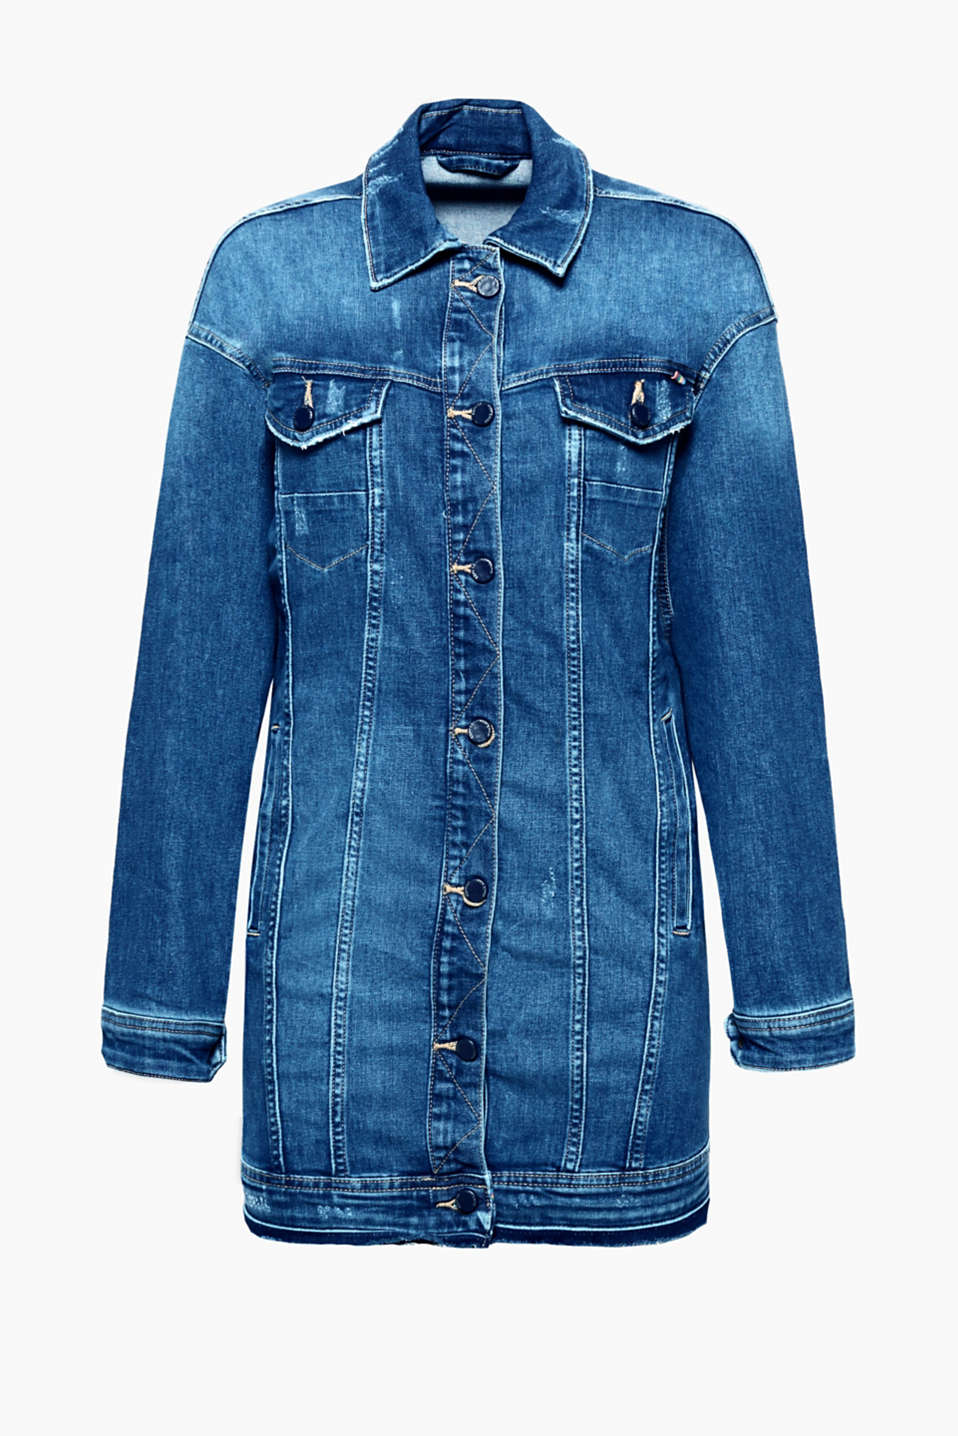 Feel good, look good, do good - Die lange Form macht diese Denim-Jacke aus recyceltem Material-Mix zum Must-Have!